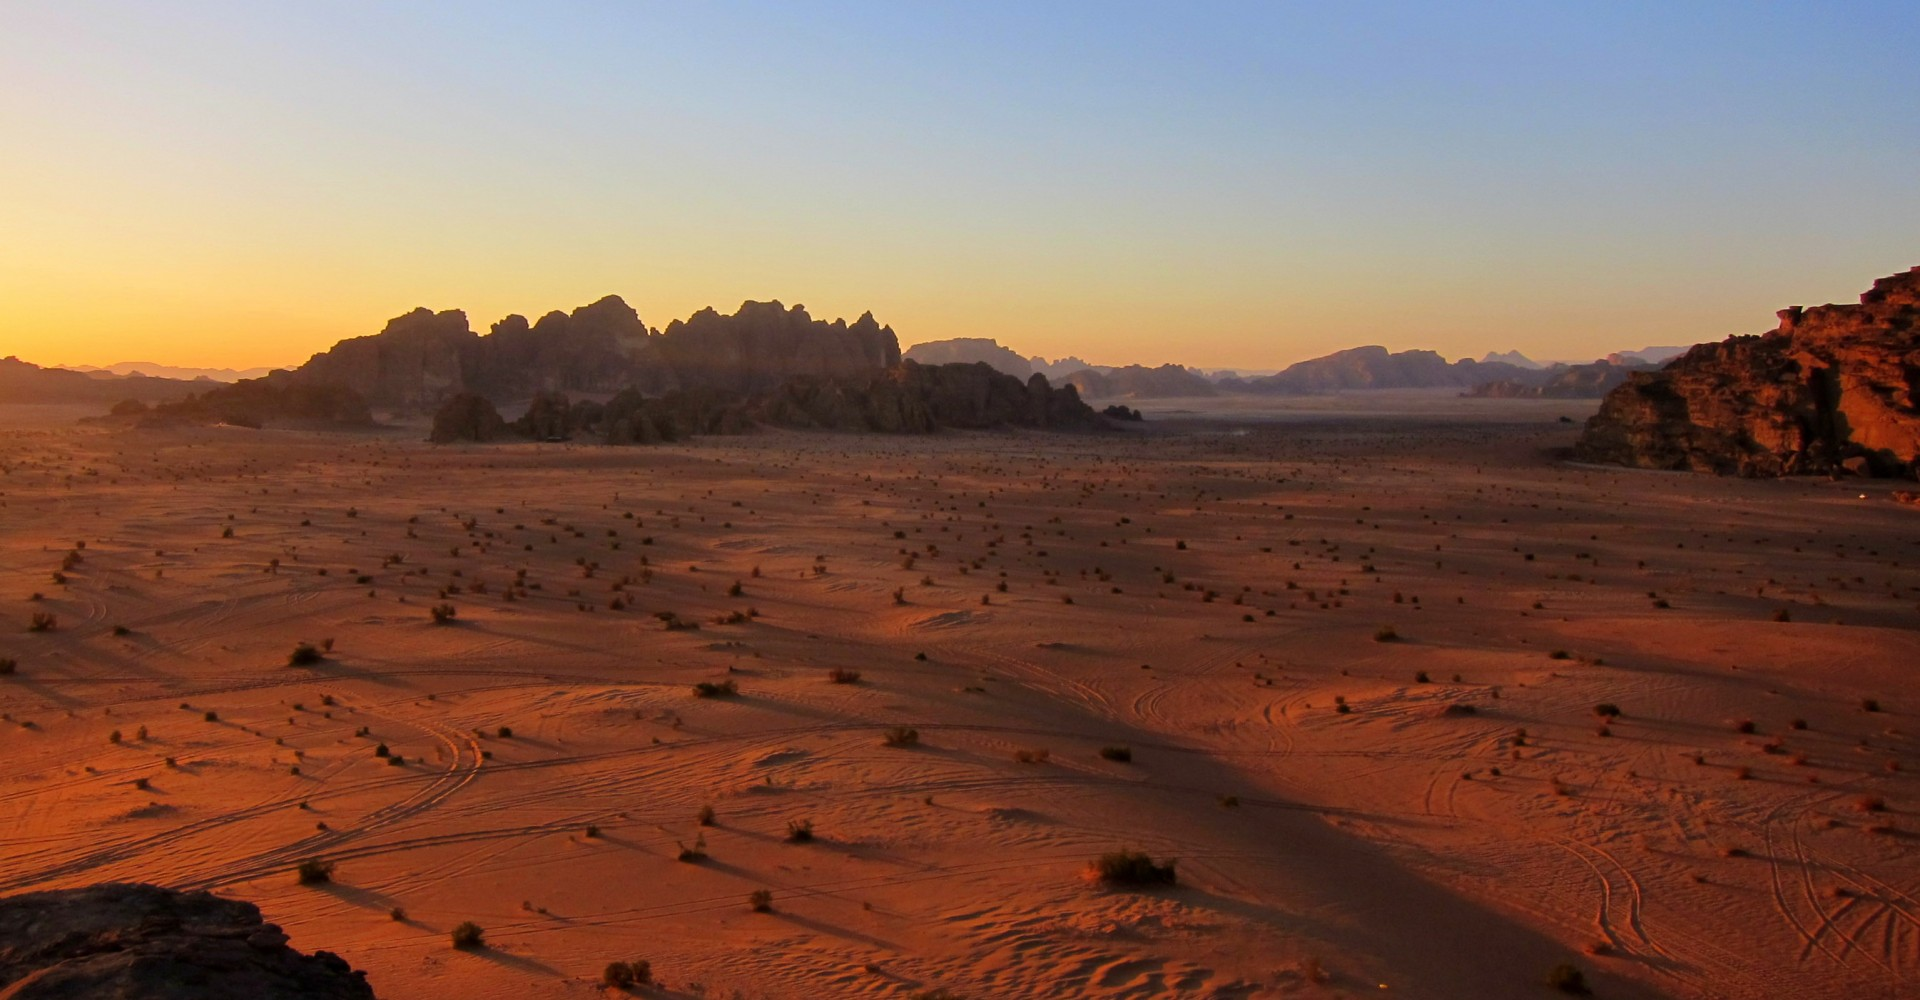 Wadi Rum and the Beauty of Wide Open Spaces